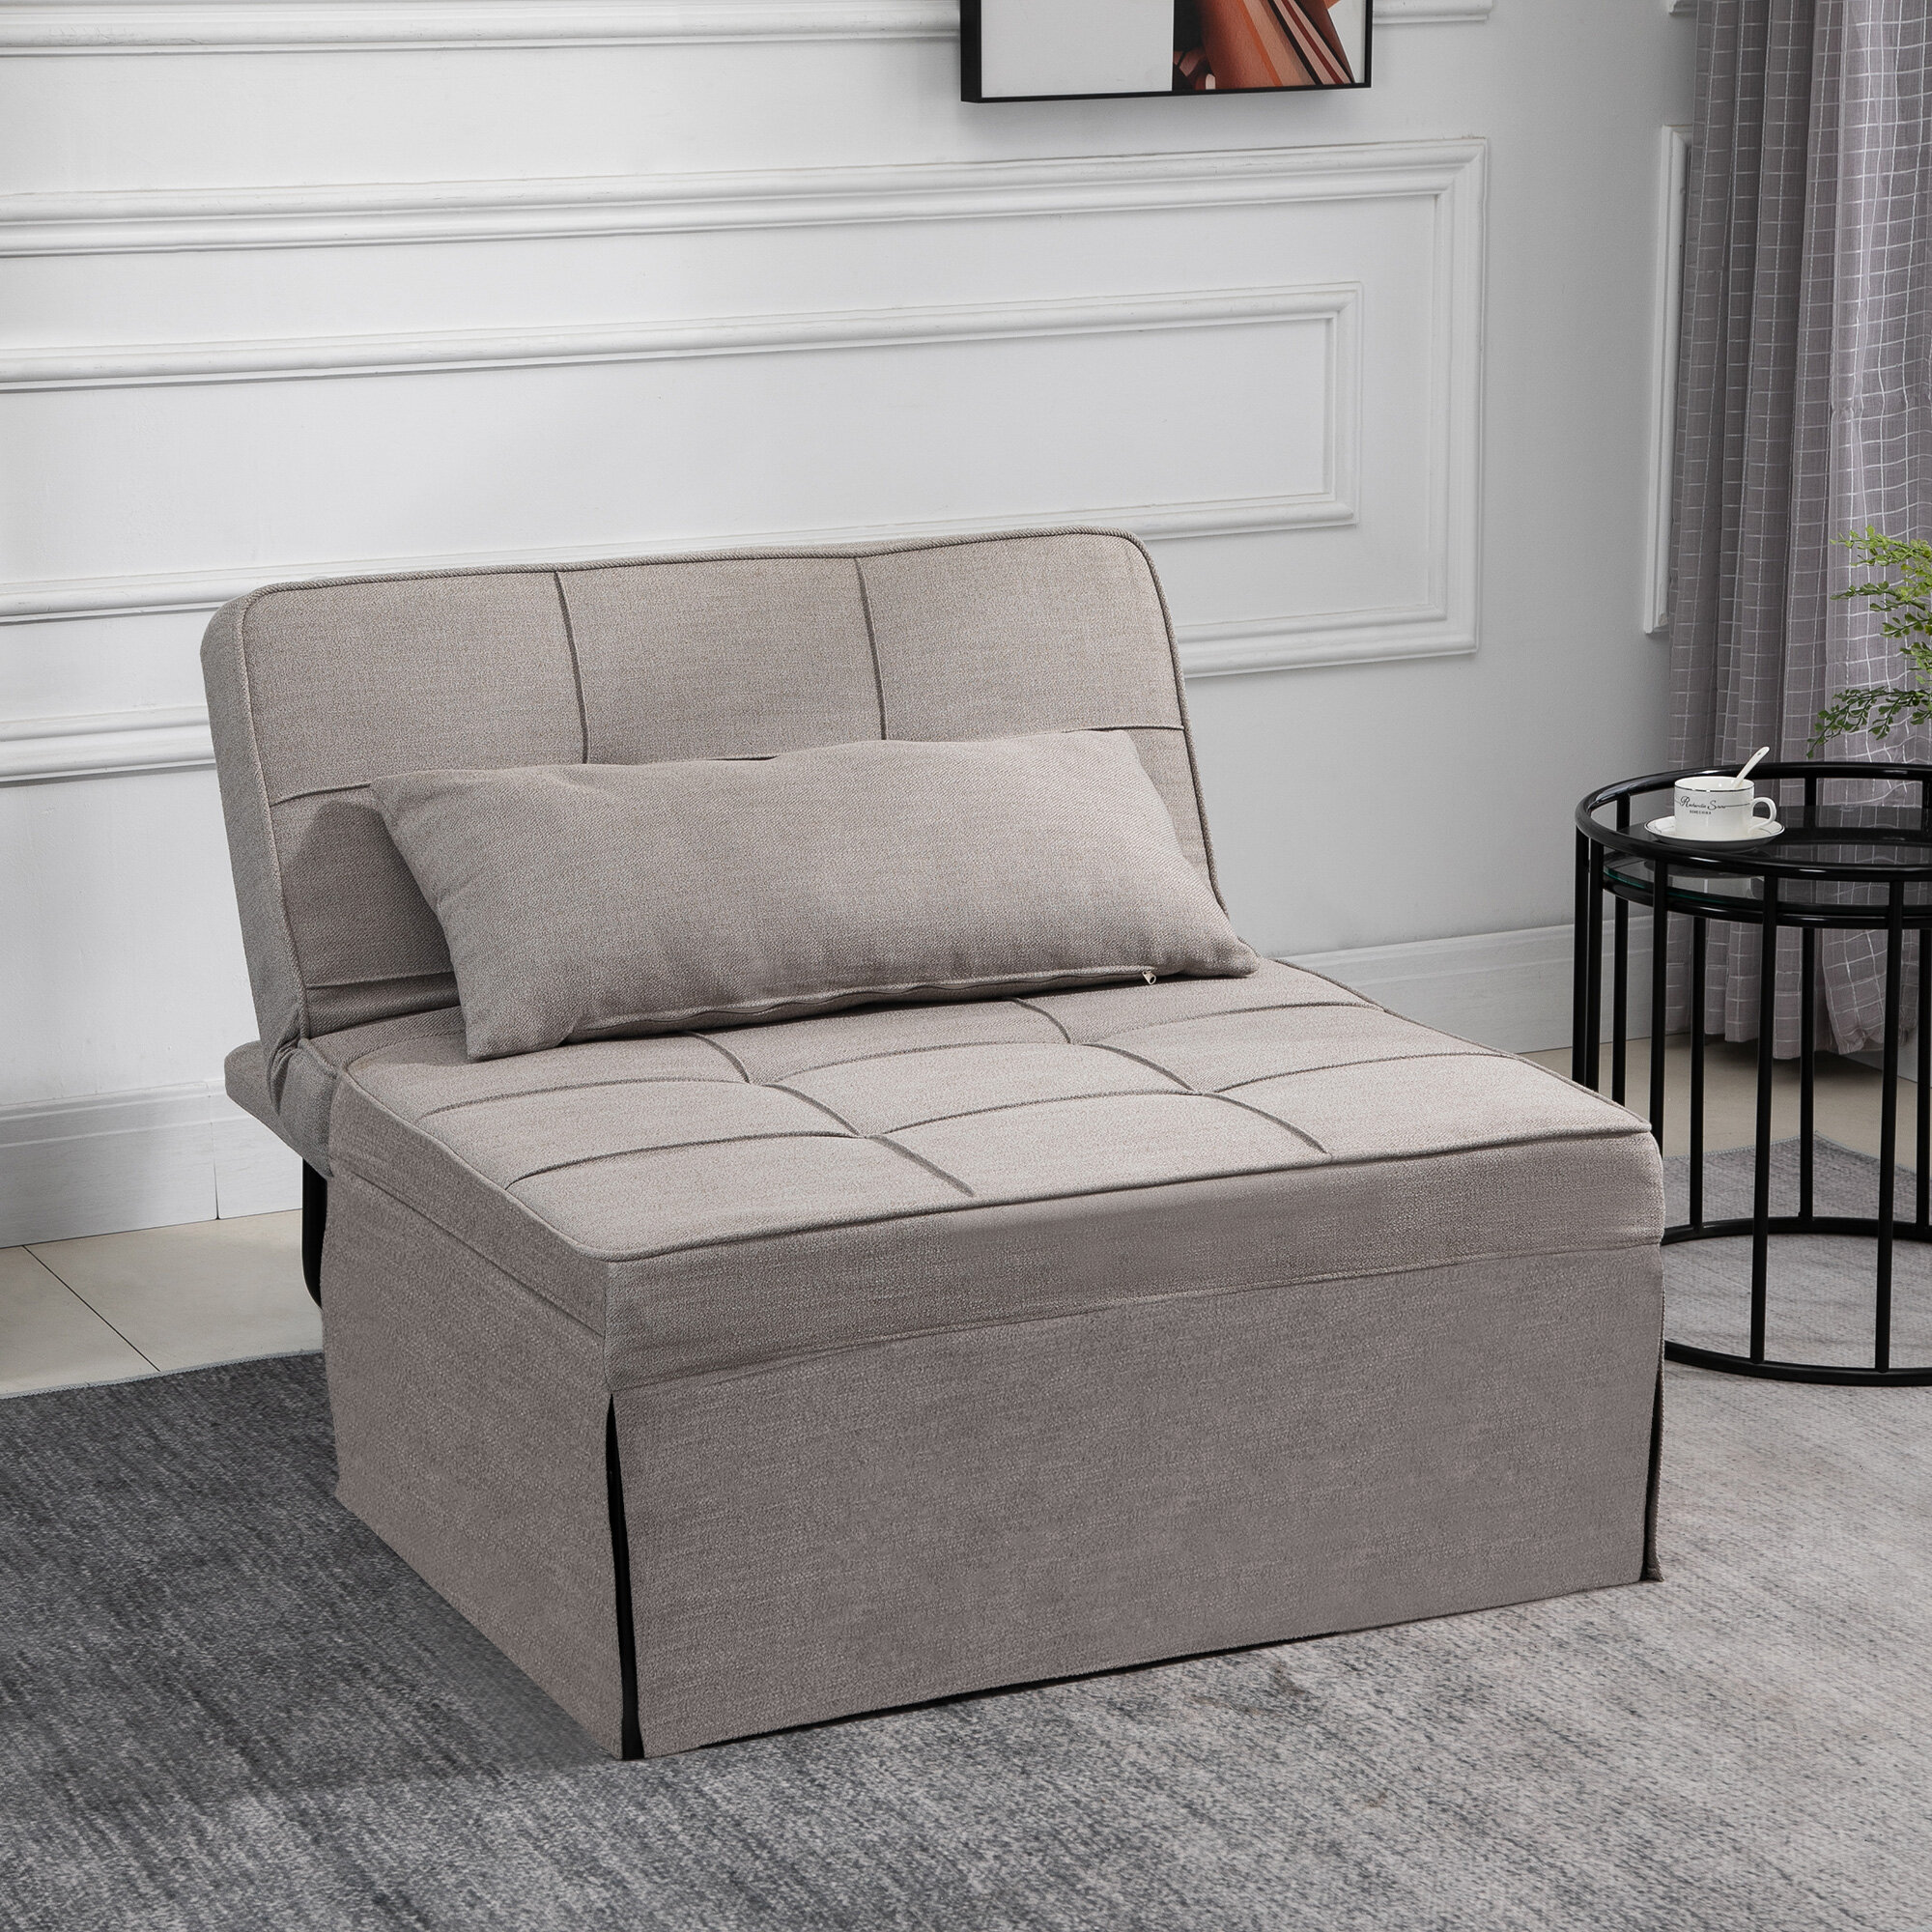 9-In-9 Table/Sofa/Chair/Bed With 9-Level Adjustable Backrest, Footstool For  Living Room Or Bedroom, Light Grey